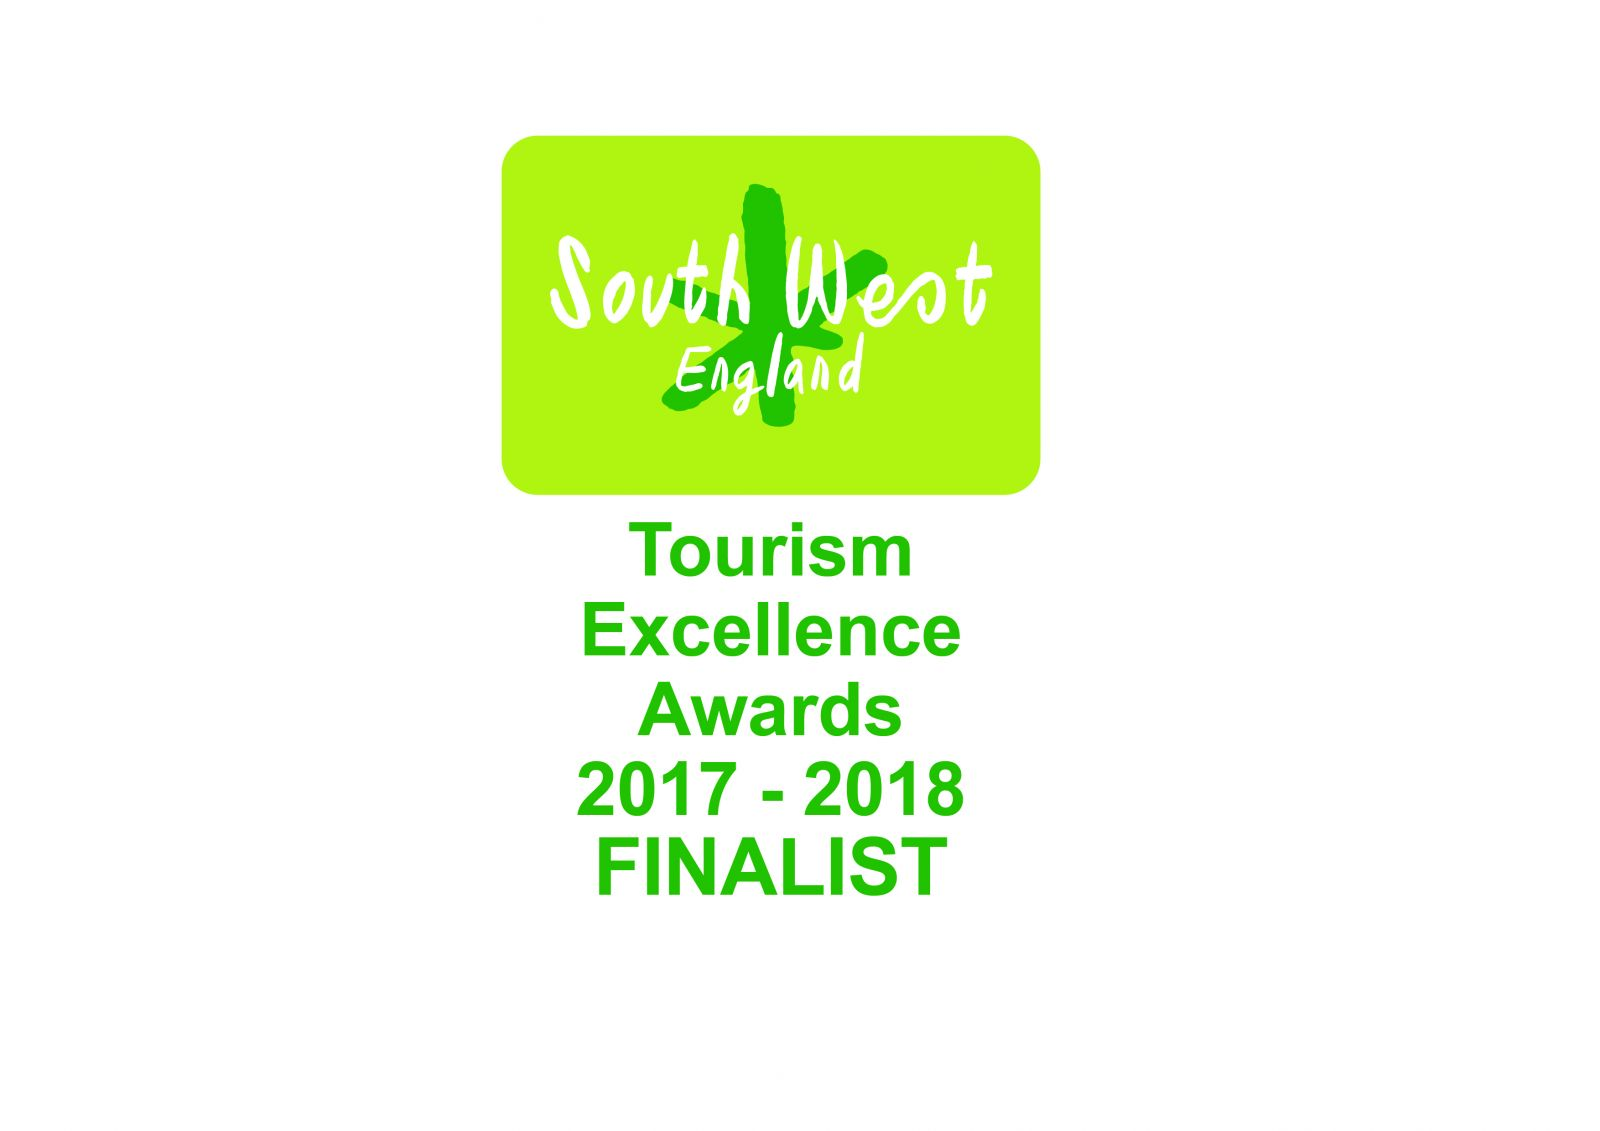 Taste Cafe are thrilled to be shortlisted as finalists in the SW Tourism Awards 2017/18